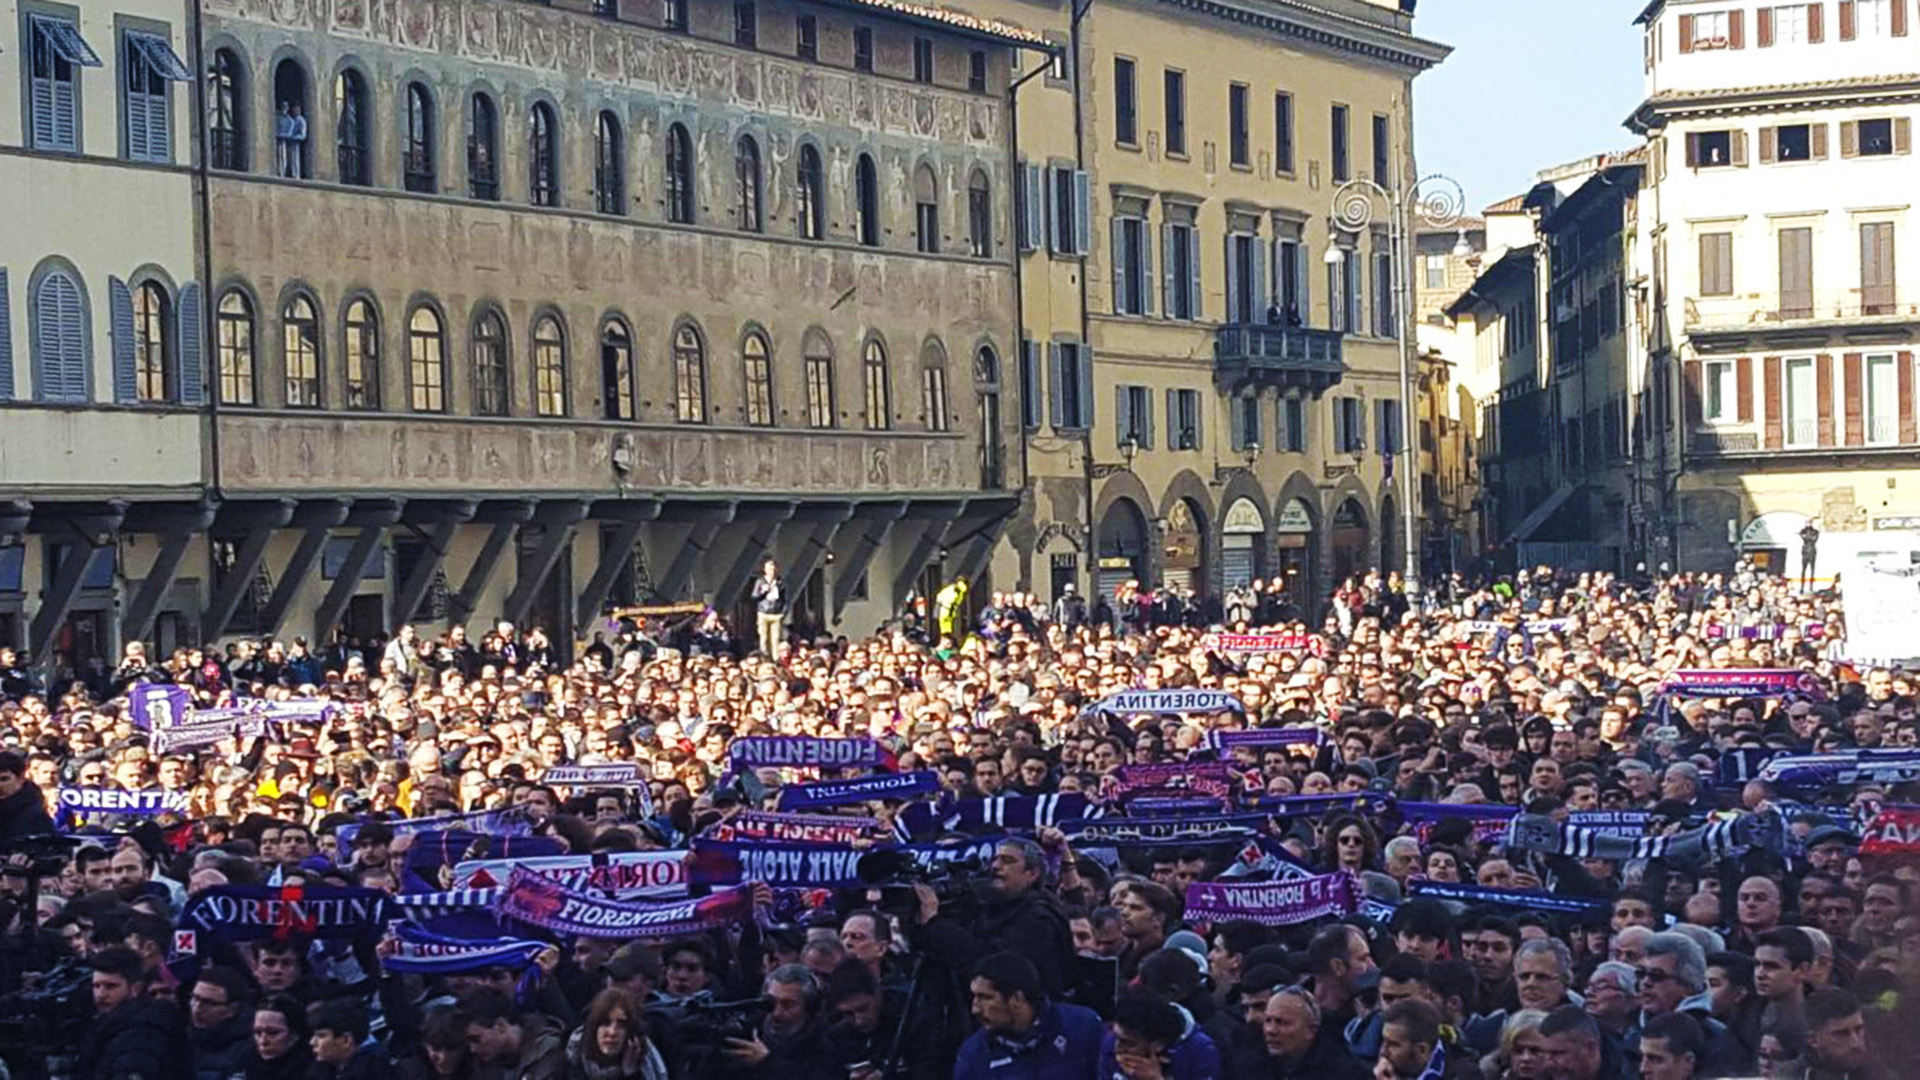 Thousands Of Fiorentina Fans Pay Their Respects At Funeral Of Davide Astori